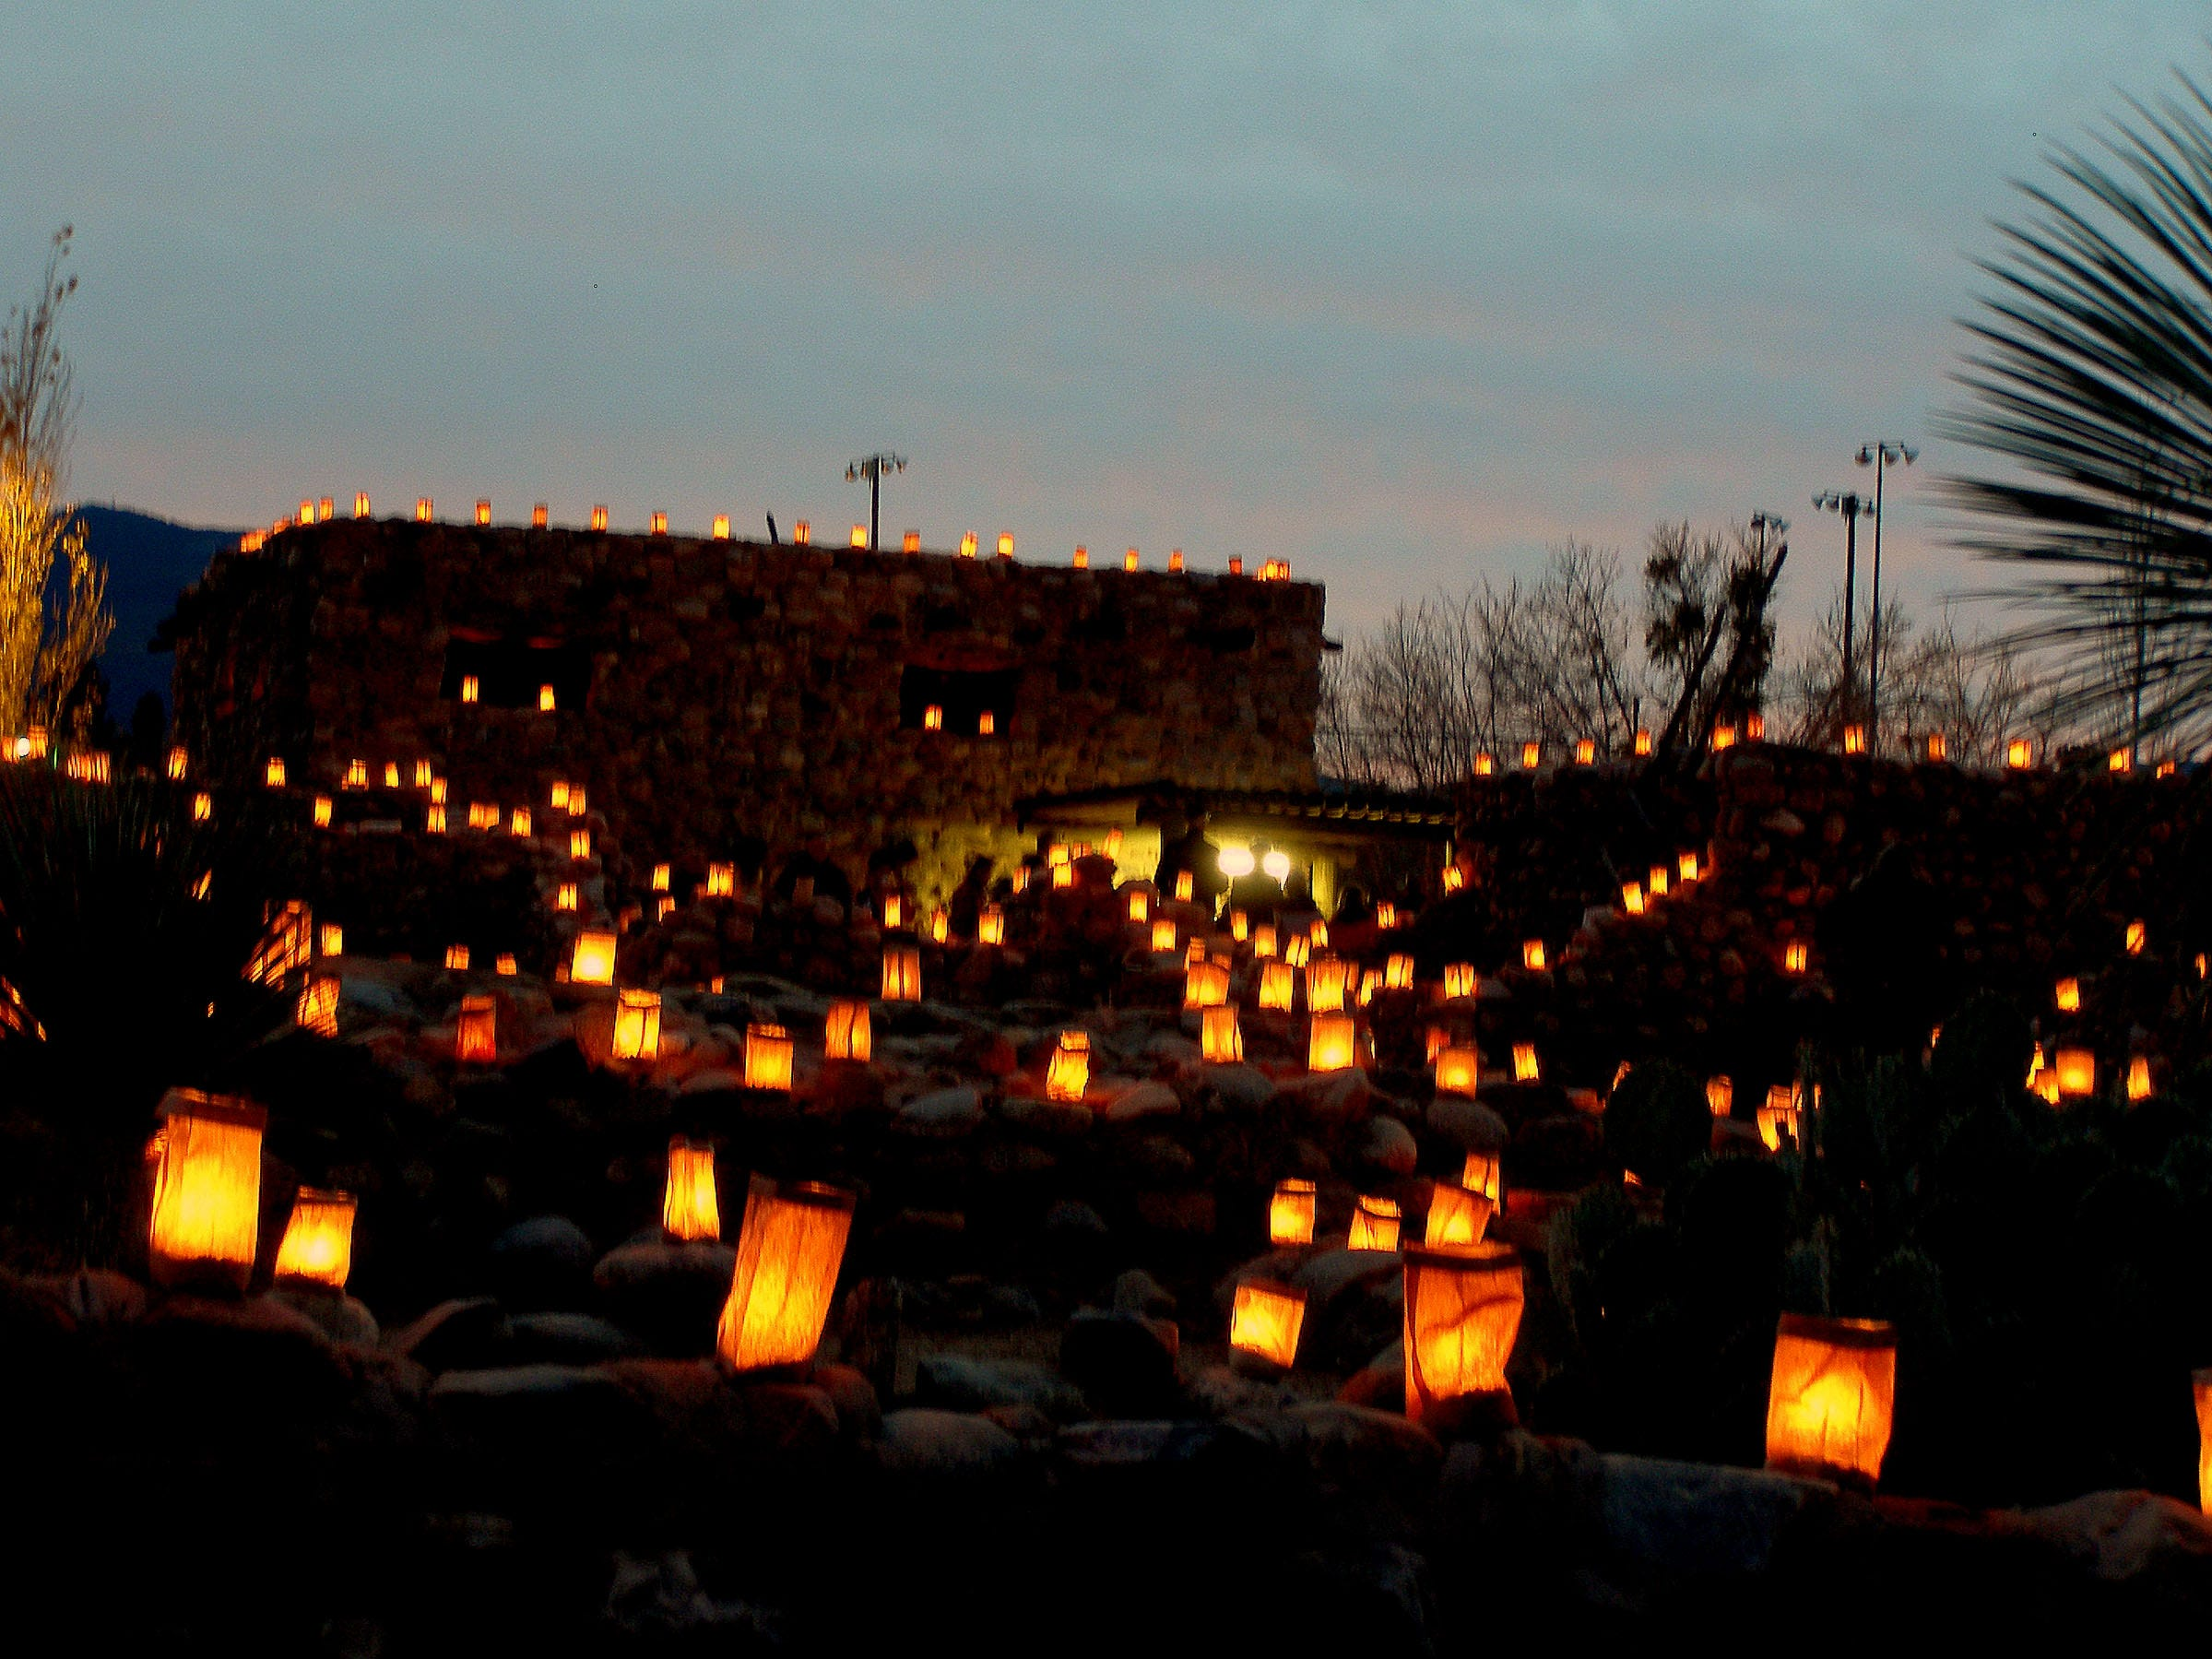 Besh Ba Gowah Archaeological Park | Unlike most archaeological sites, Besh Ba Gowah is a family-friendly hands-on adventure. | Bonus: From 5-9 p.m. Dec. 1, the free Festival of Lights features hundreds of luminarias perched atop the pueblo walls and Native American flute music wafting through the twilight. | Details: 928-425-0320, www.globeaz.gov/visitors/besh-ba-gowah.